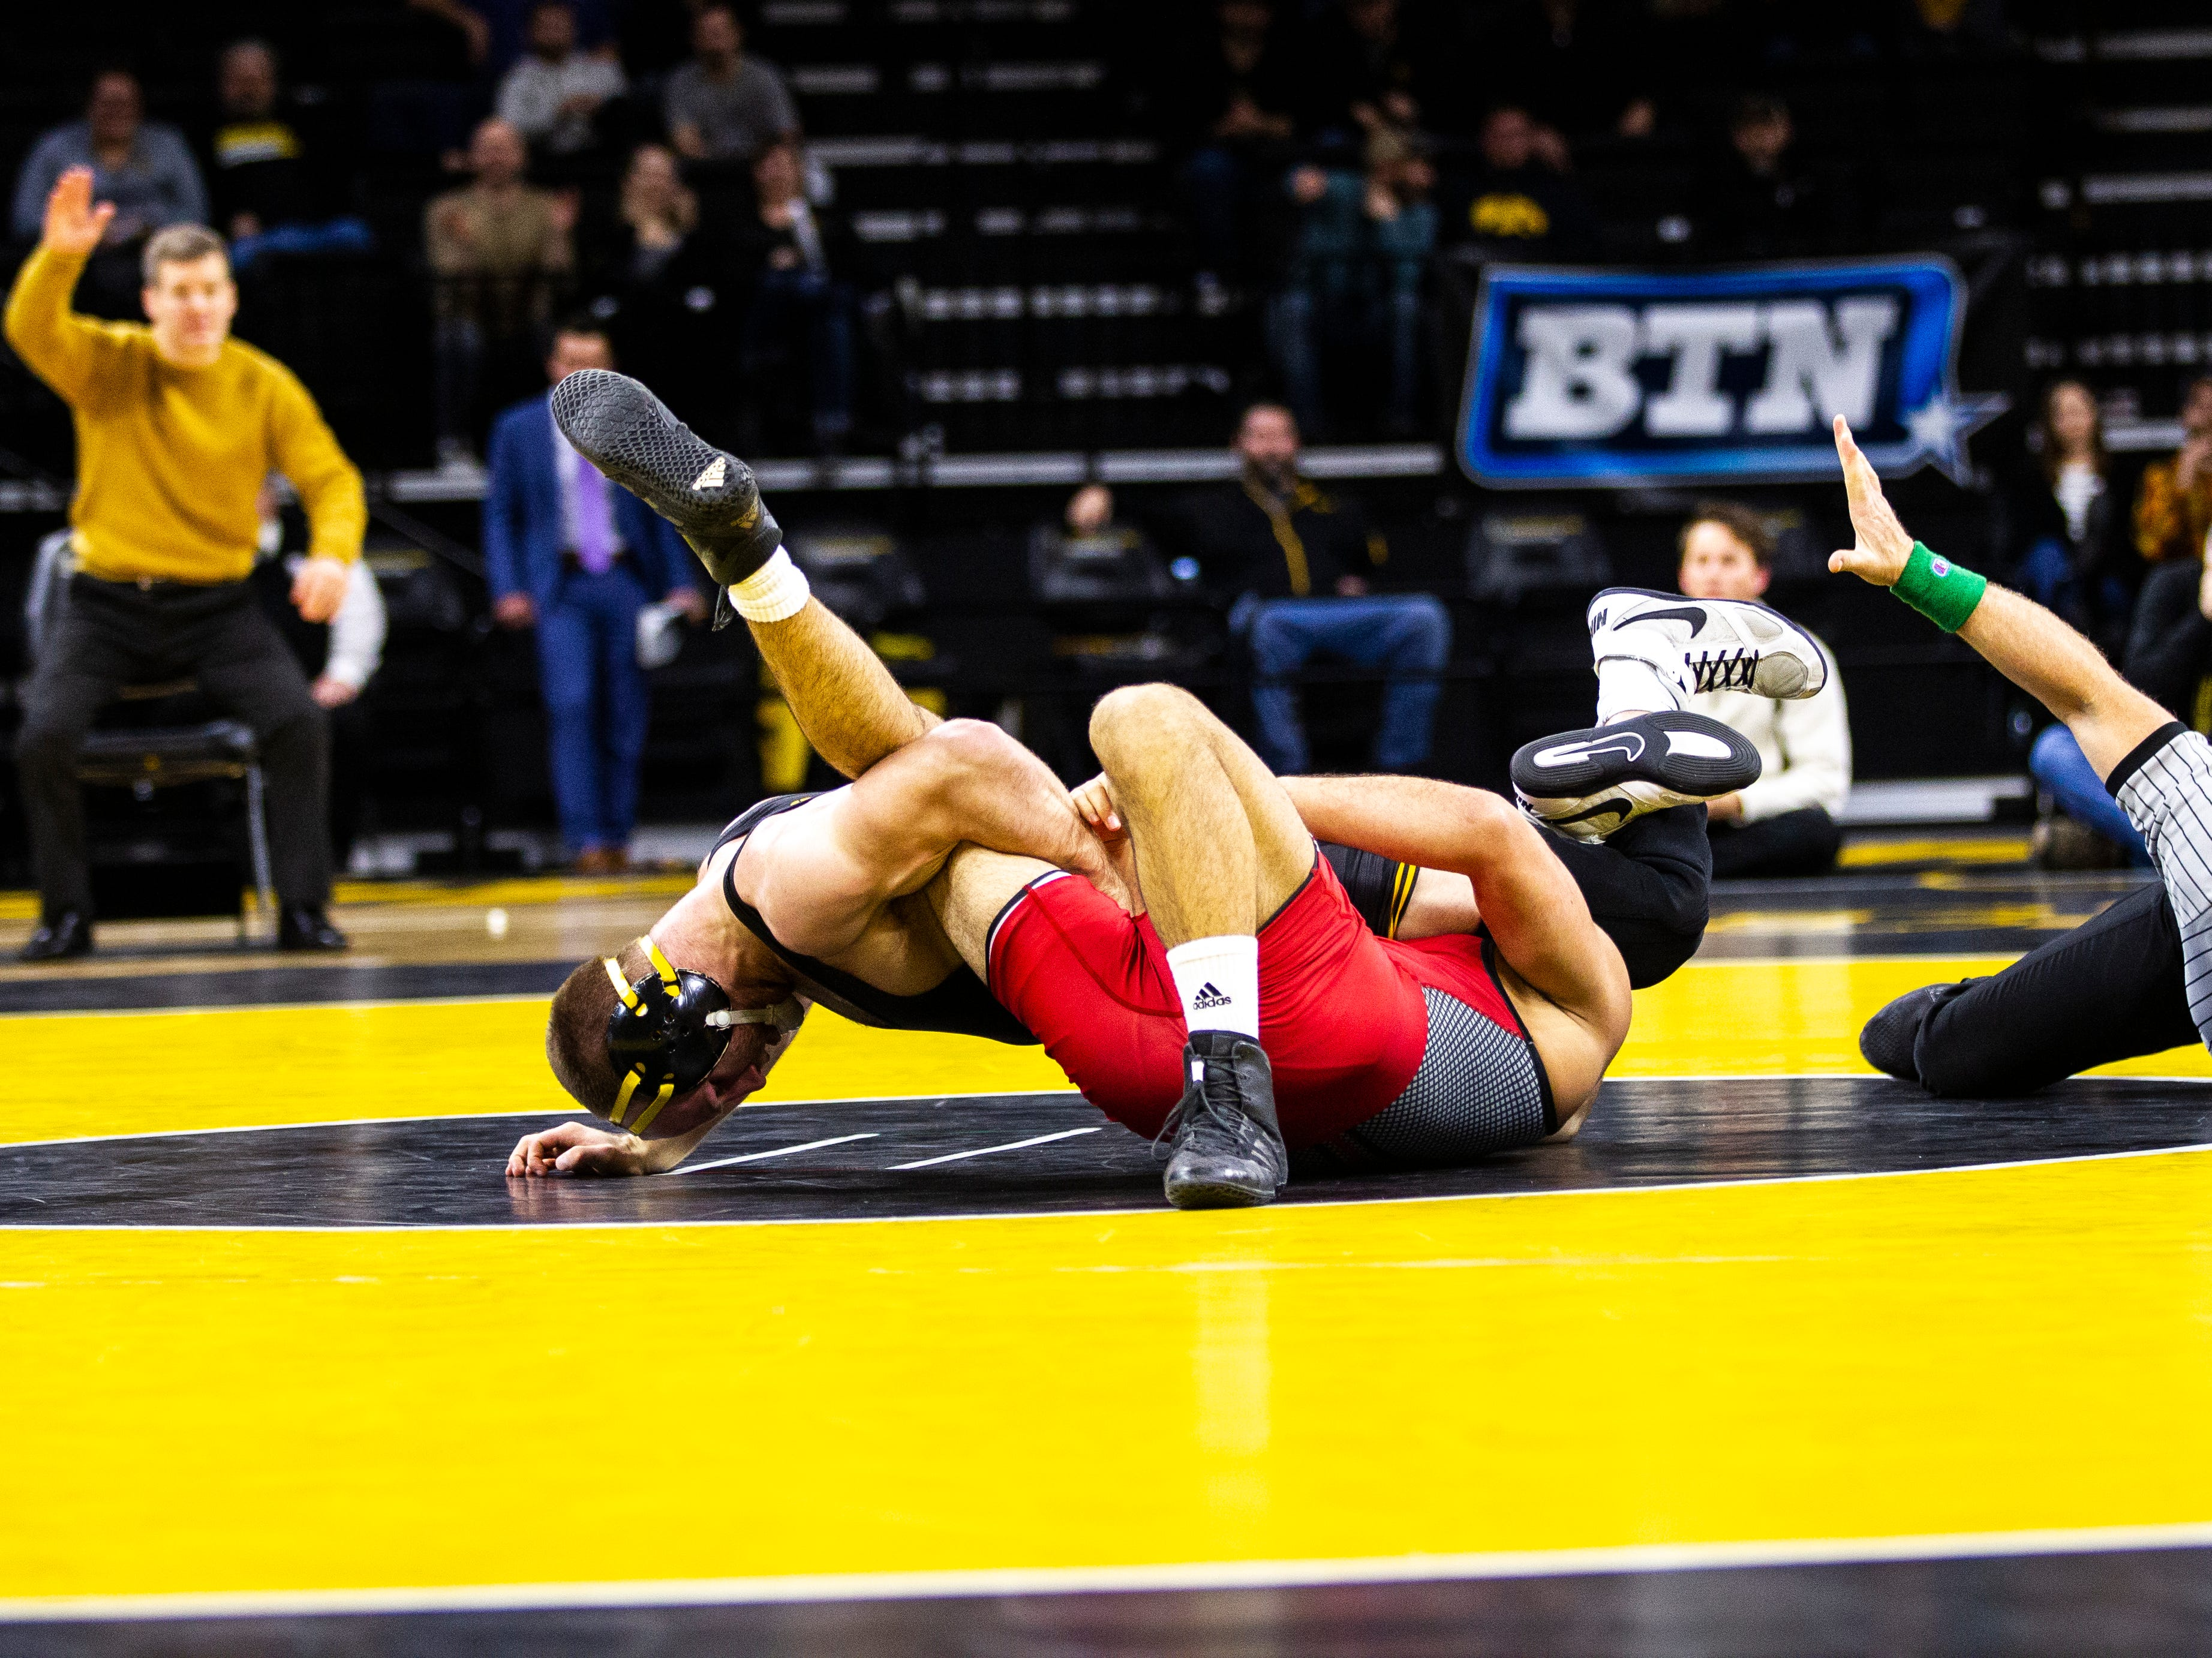 Iowa's Alex Marinelli pins Rutgers' Anthony Oliveri at 165 during a NCAA Big Ten Conference wrestling dual on Friday, Jan. 18, 2019, at Carver-Hawkeye Arena in Iowa City, Iowa.